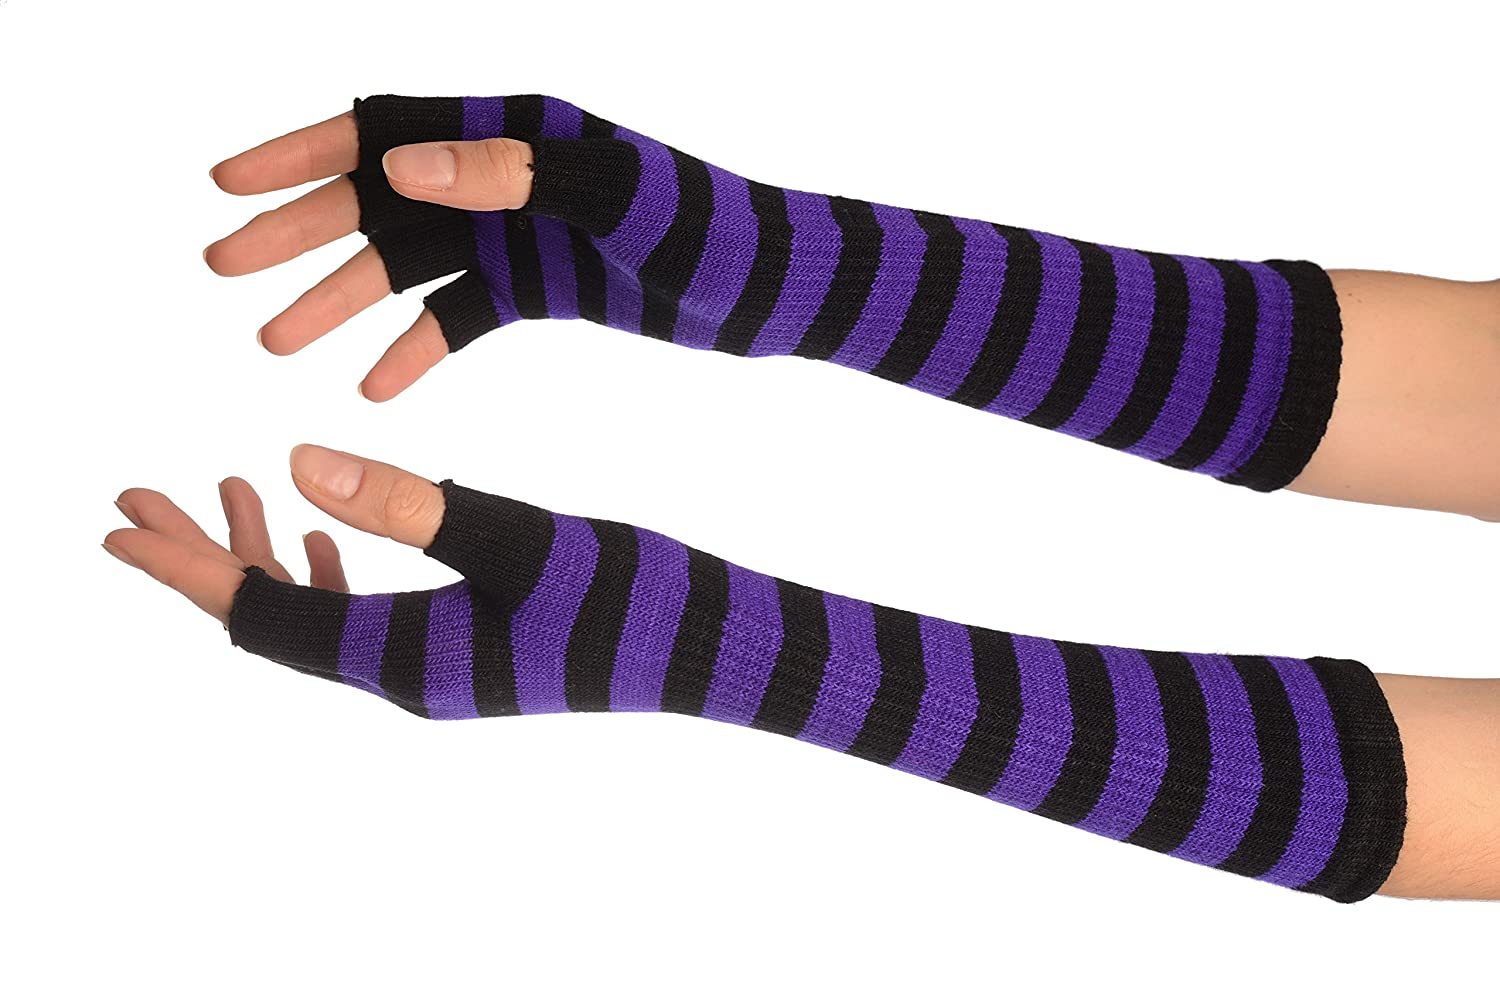 Purple & Black Stripes Fingerless Gloves - Gloves GL003548